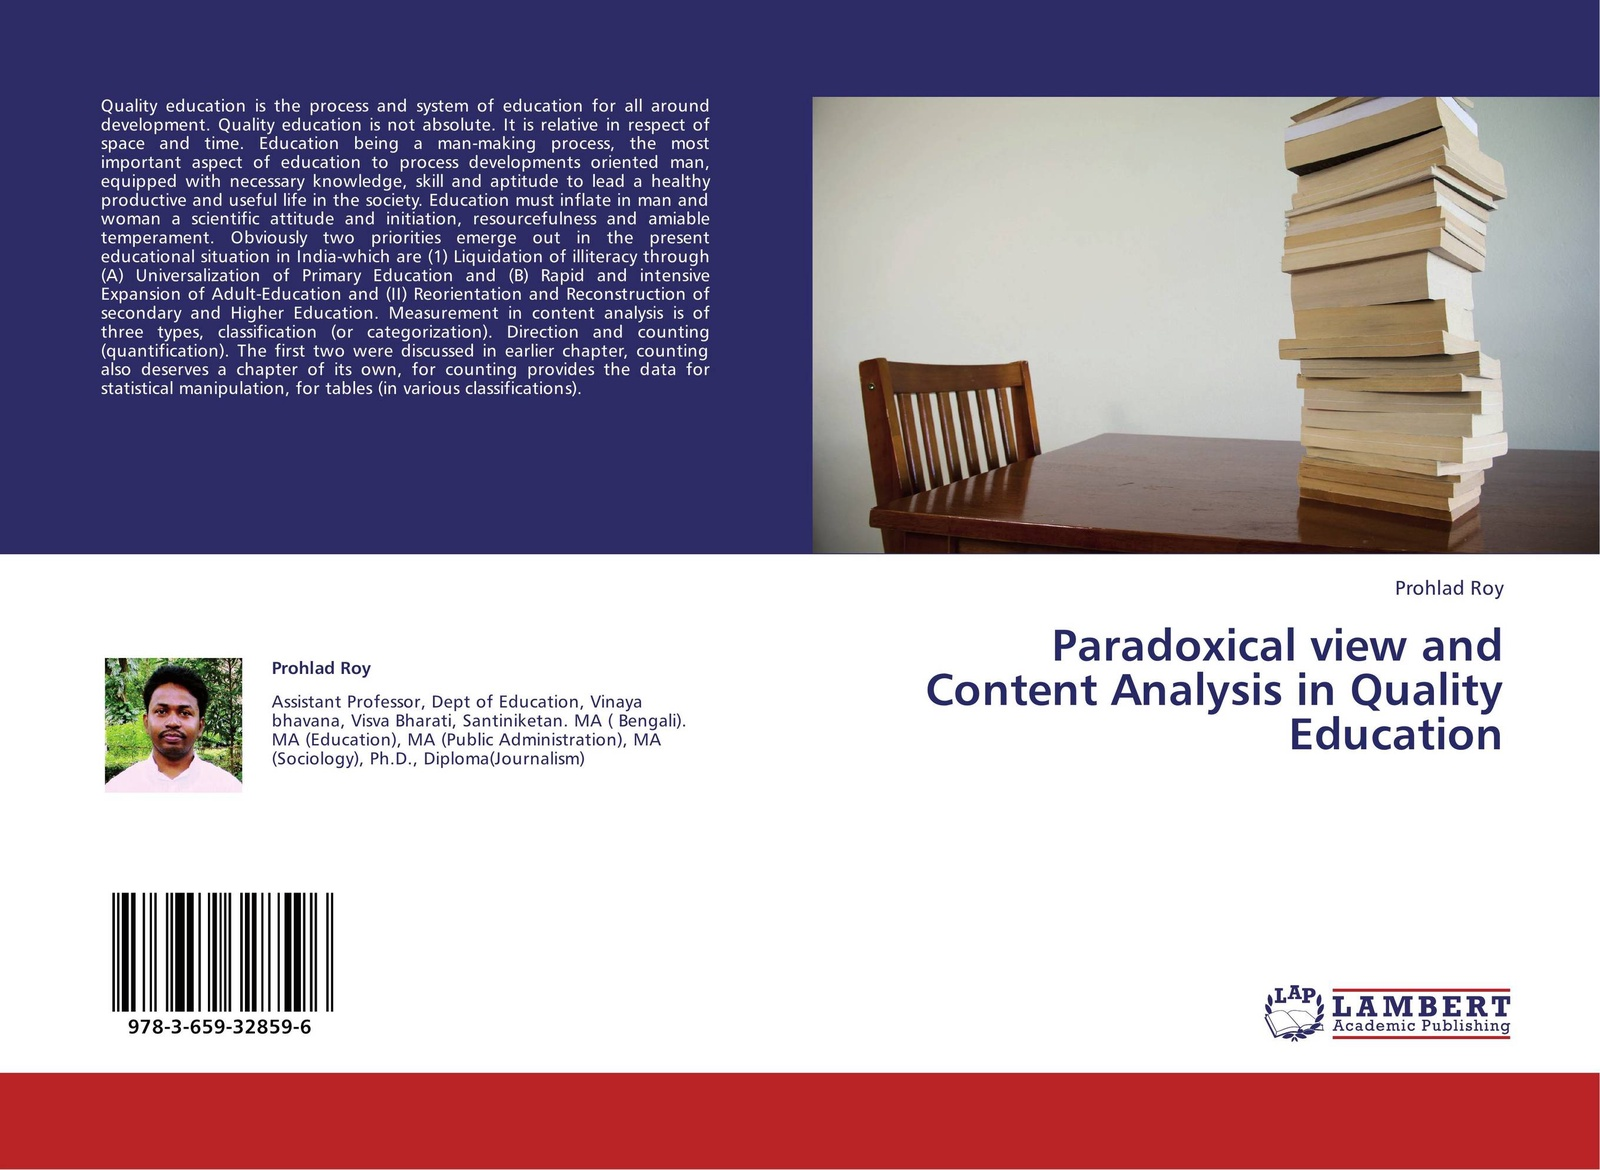 Prohlad Roy Paradoxical view and Content Analysis in Quality Education muhammad altaf qureshi universalization of primary education in pakistan